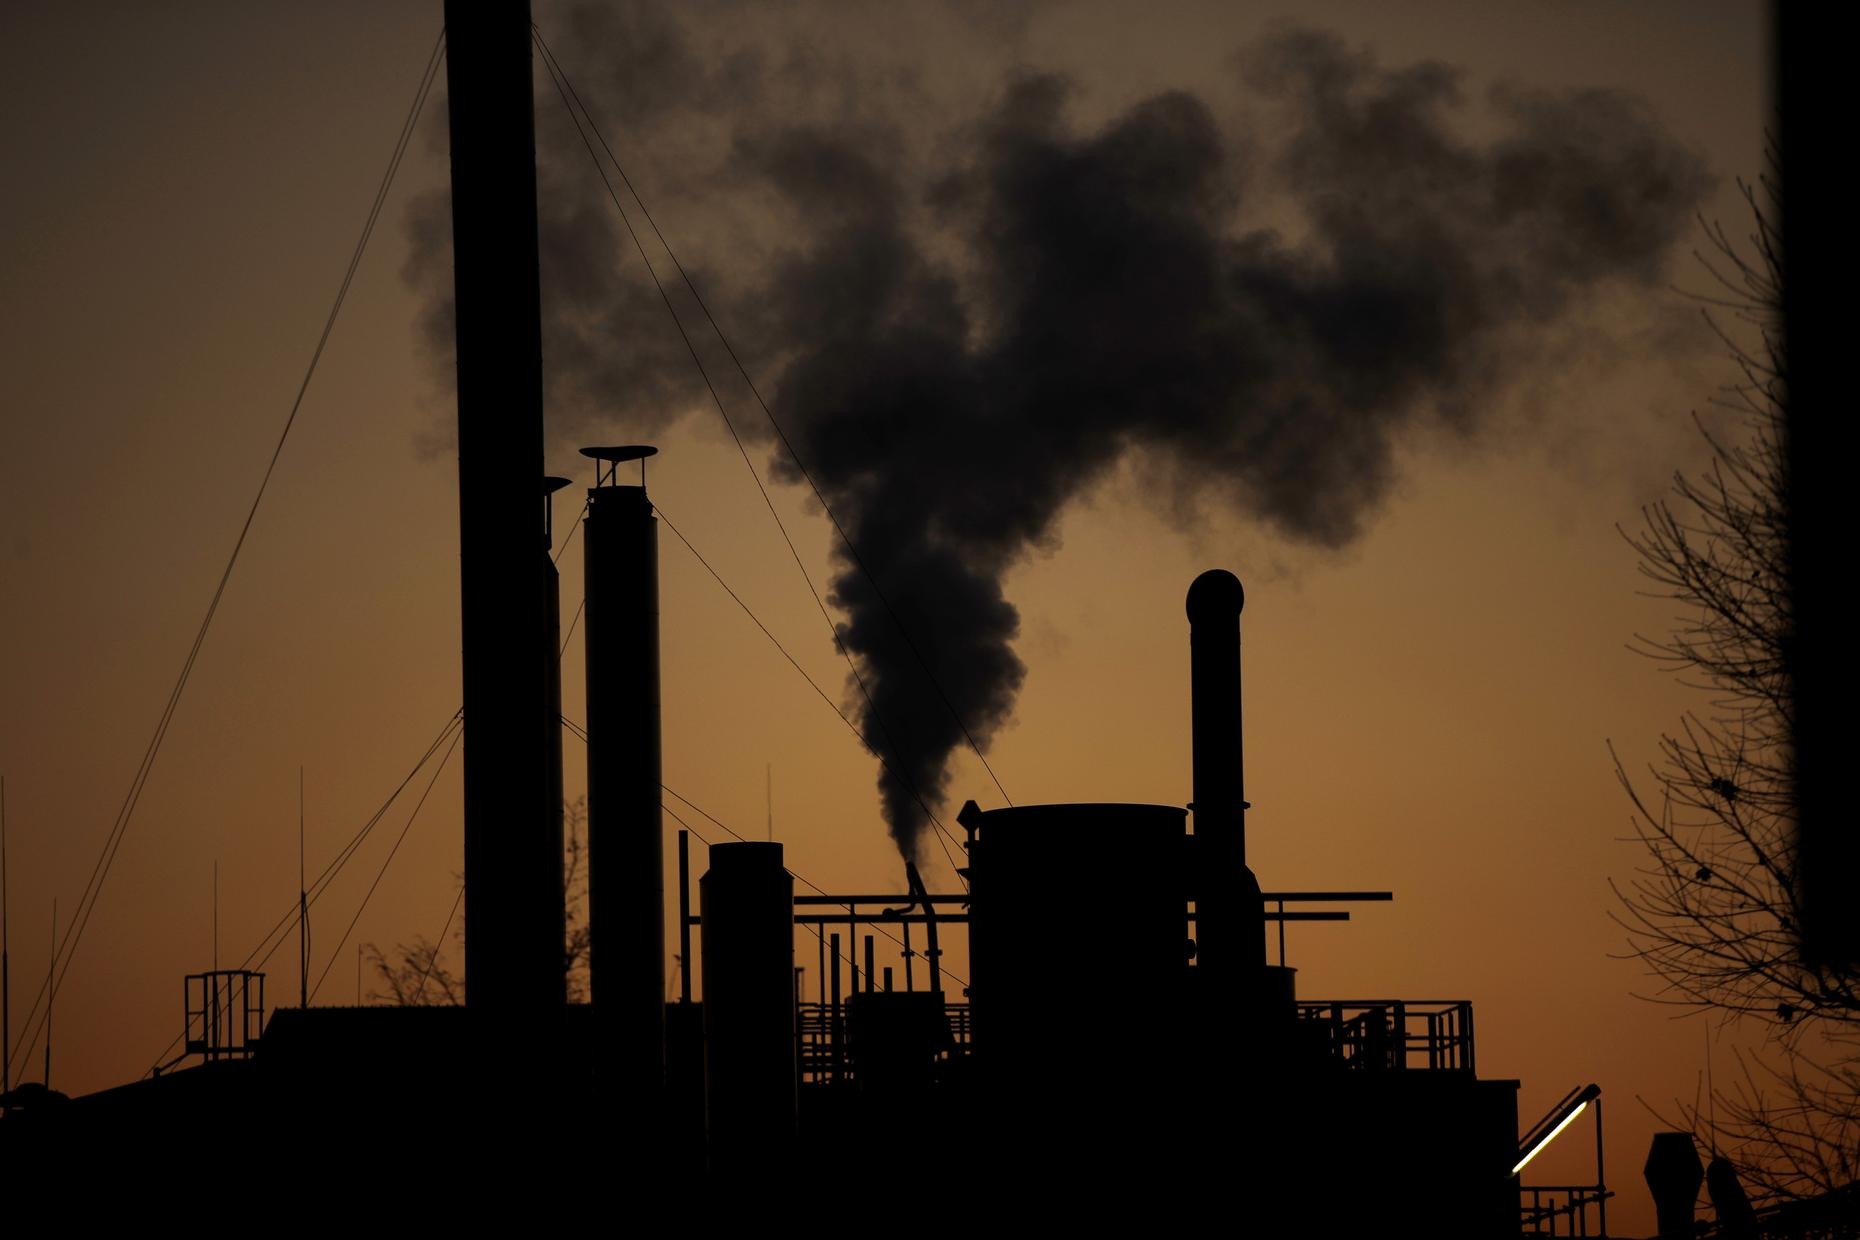 Silhouette of factory with smokestacks billowing smoke into a brownish-red sky